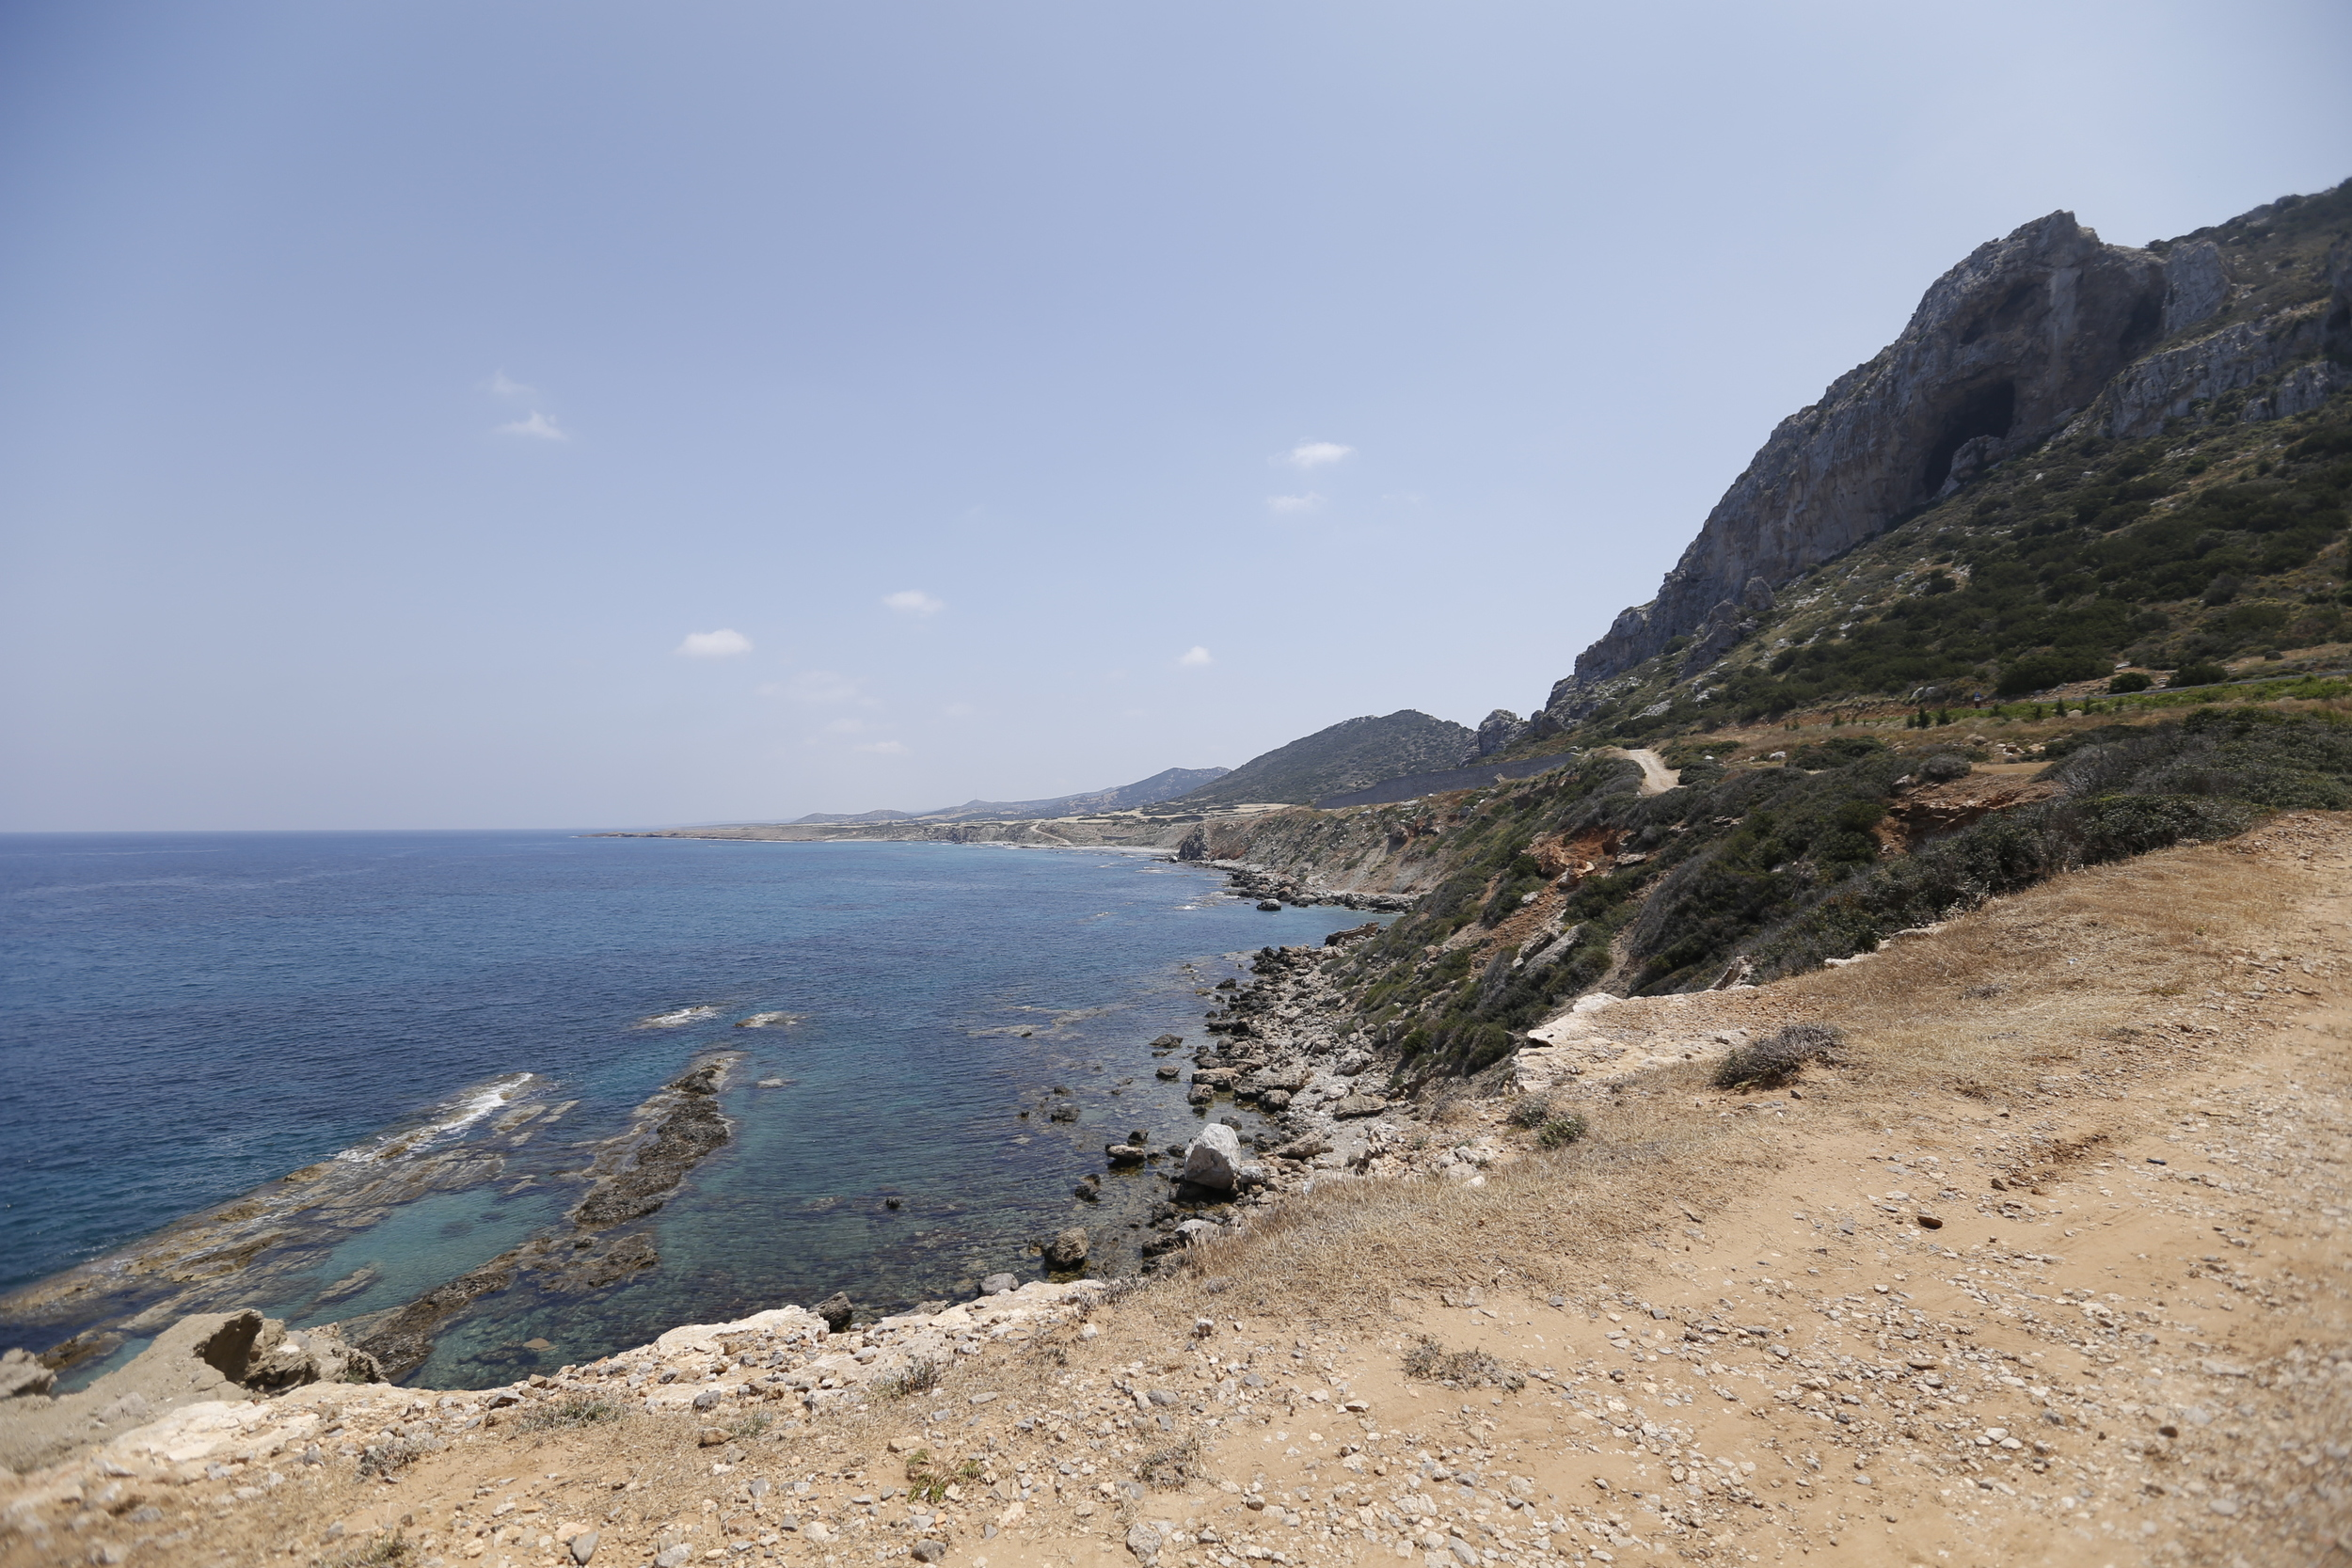 kyrenia mountains, kyrenia mountain trail, kyrenia, north cyprus, bikepacking north cyprus, travel, adventure, sponsored explorer, bicycle touring apocalypse, bikepacking blog, bicycle touring blog, expedition, biking, cycling gear, surly, surly bikes, jack macgowan, canon, canon 6d